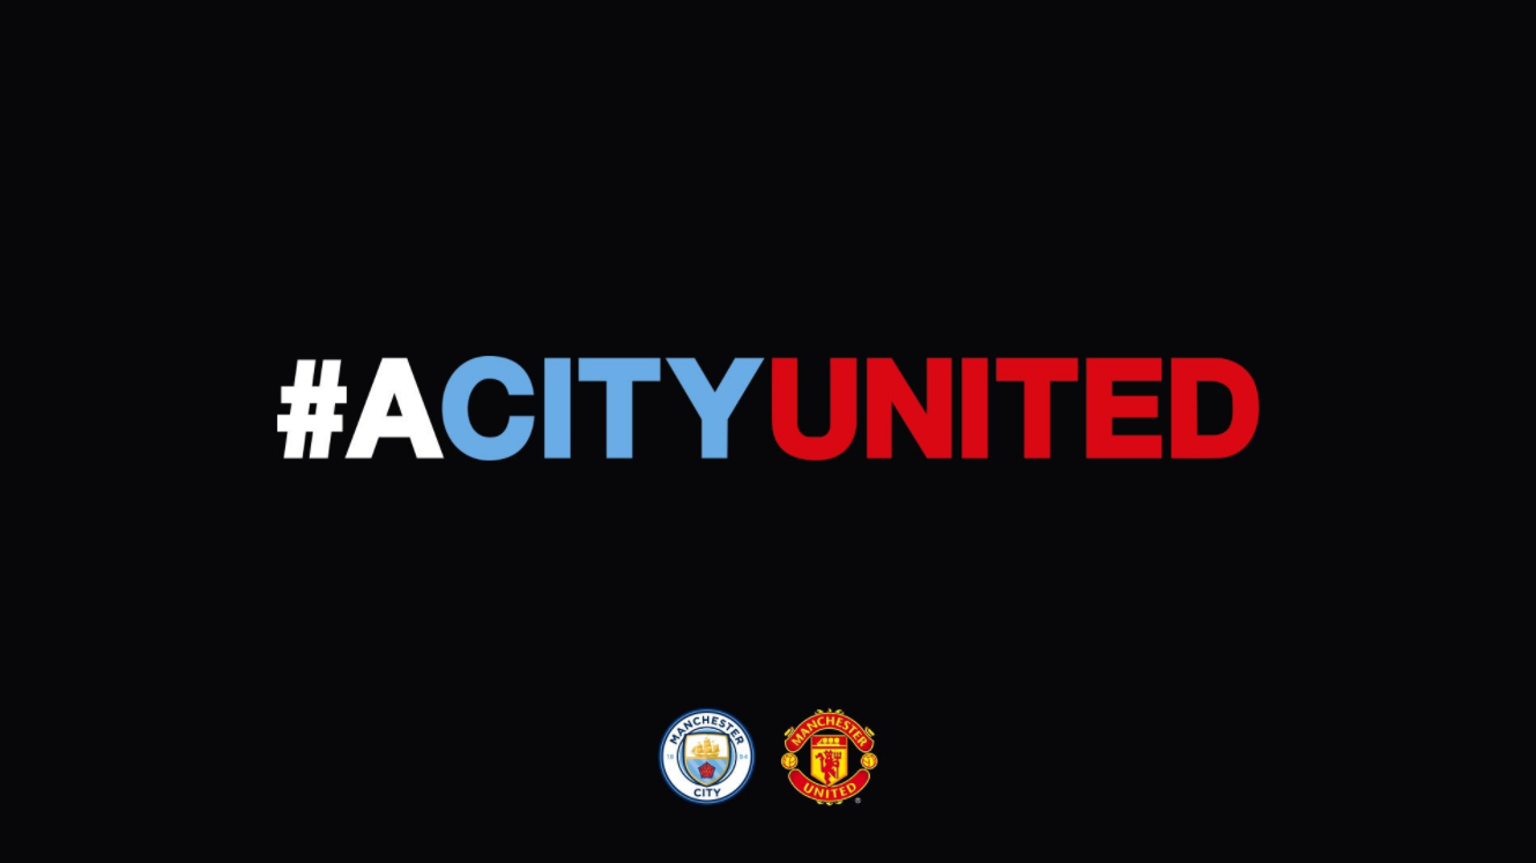 a%20city%20united%20one.PNG?width=1536